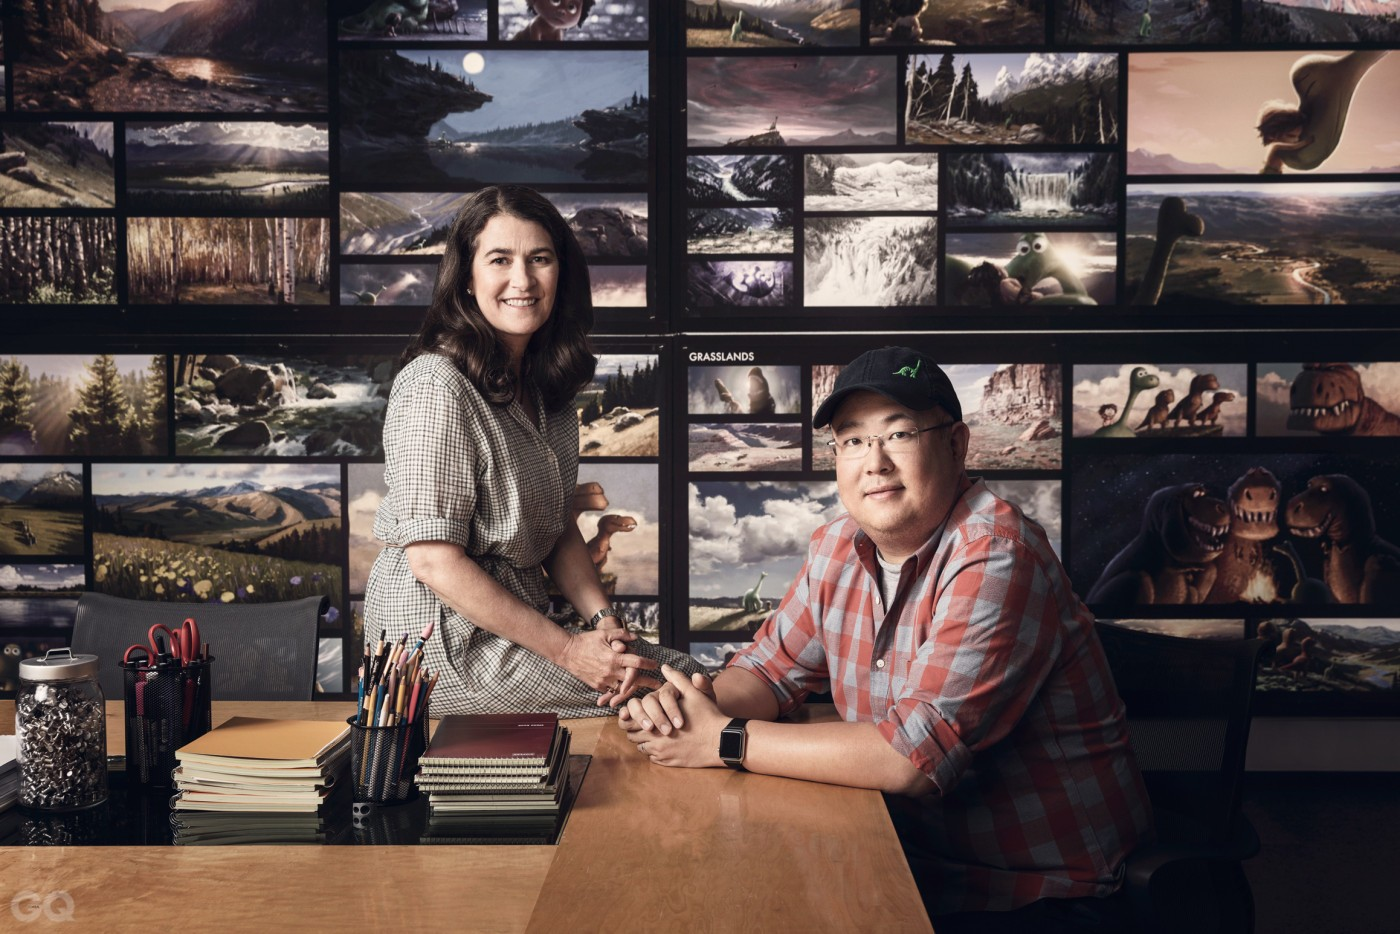 relates to feature, How Pixar embraces a crisis, Business, animation, film industry, Pixar producer Denise Ream sits on desk, Director Pete Sohn sits on chair, conceptual art behind, desk office